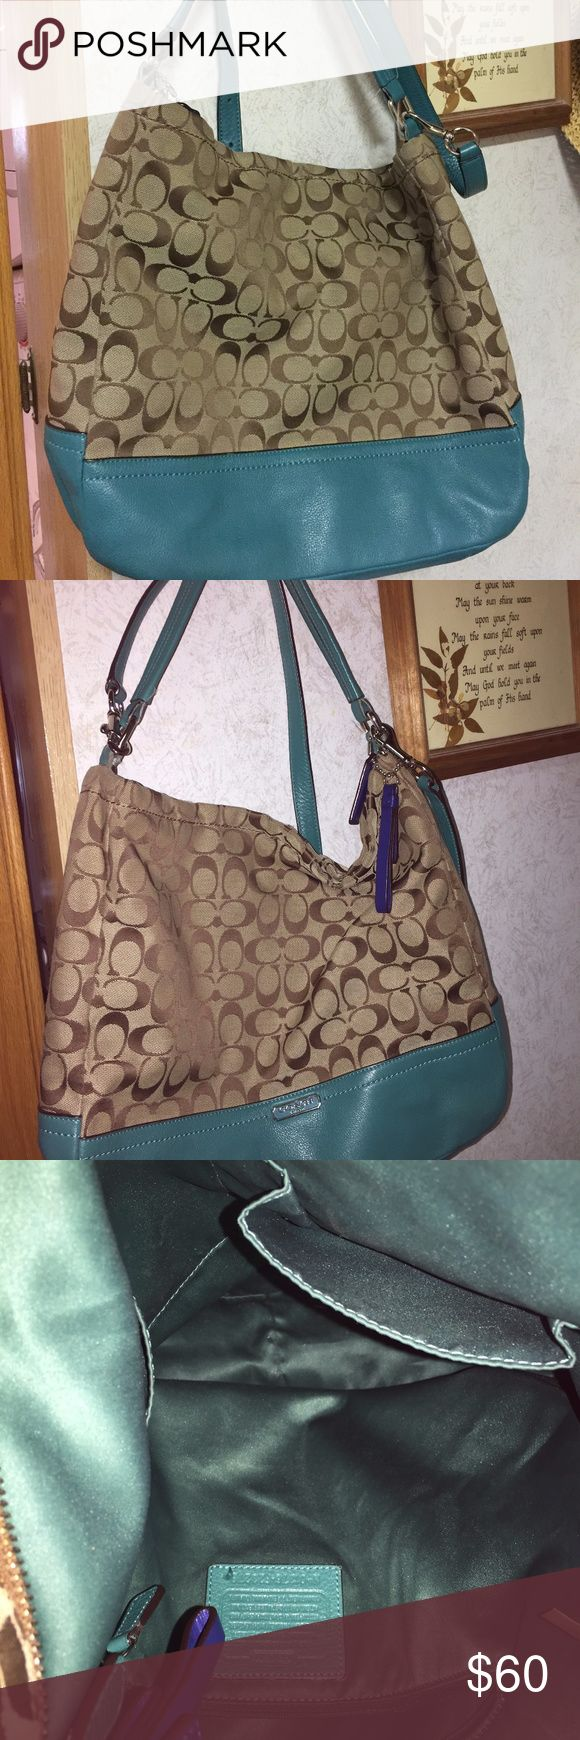 Womans Handbag Teal and  Brown Handbag in fair condition no wearing of handles or bottom of bag it has some wear on the top where it zips. I would say it is more of a larger bag Coach Bags Shoulder Bags